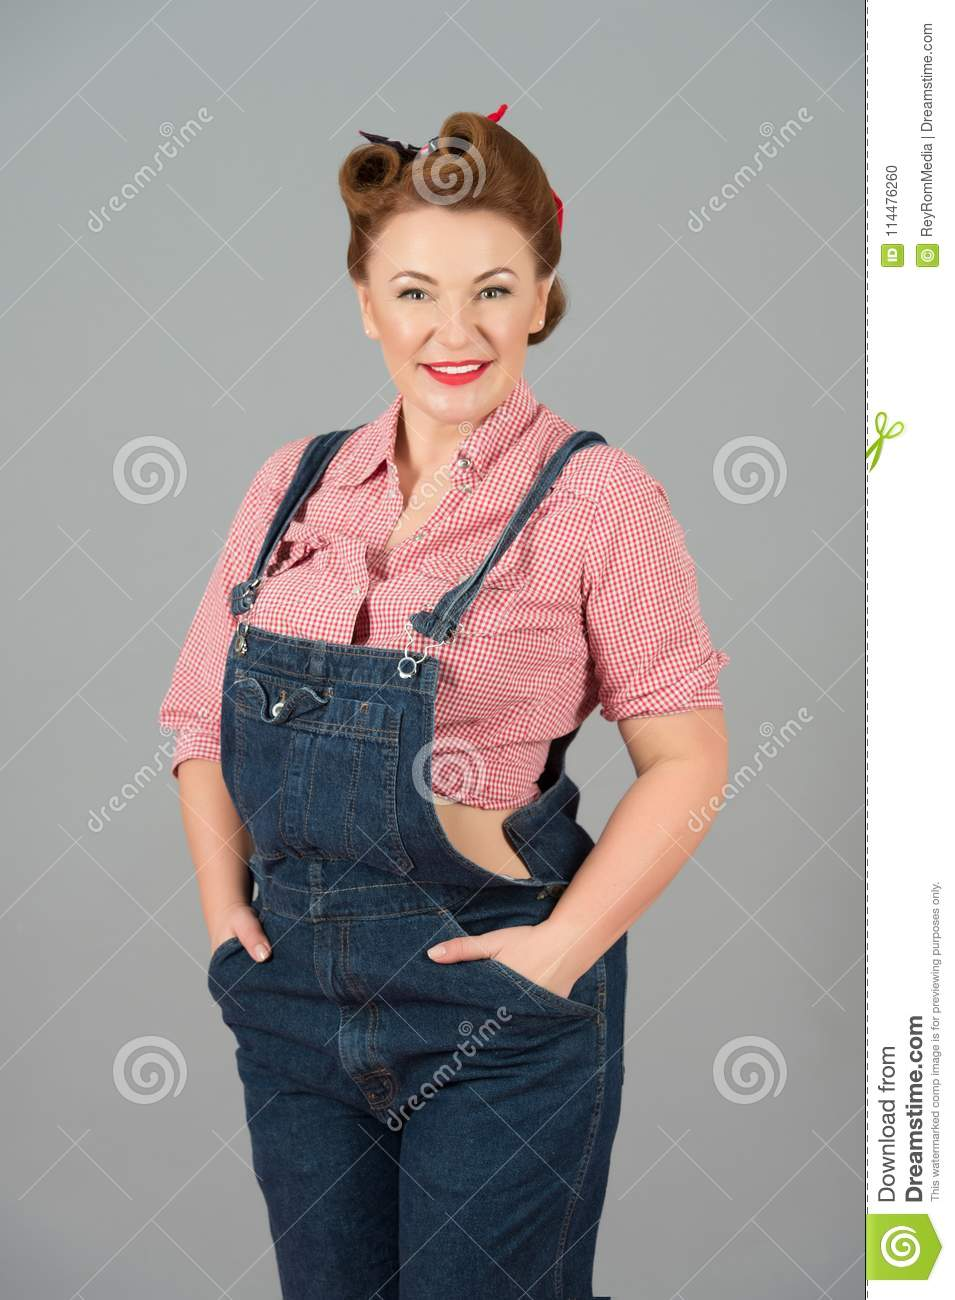 Denim Dress And Pin Up Style Repair Woman Isolated In Studio On Grey